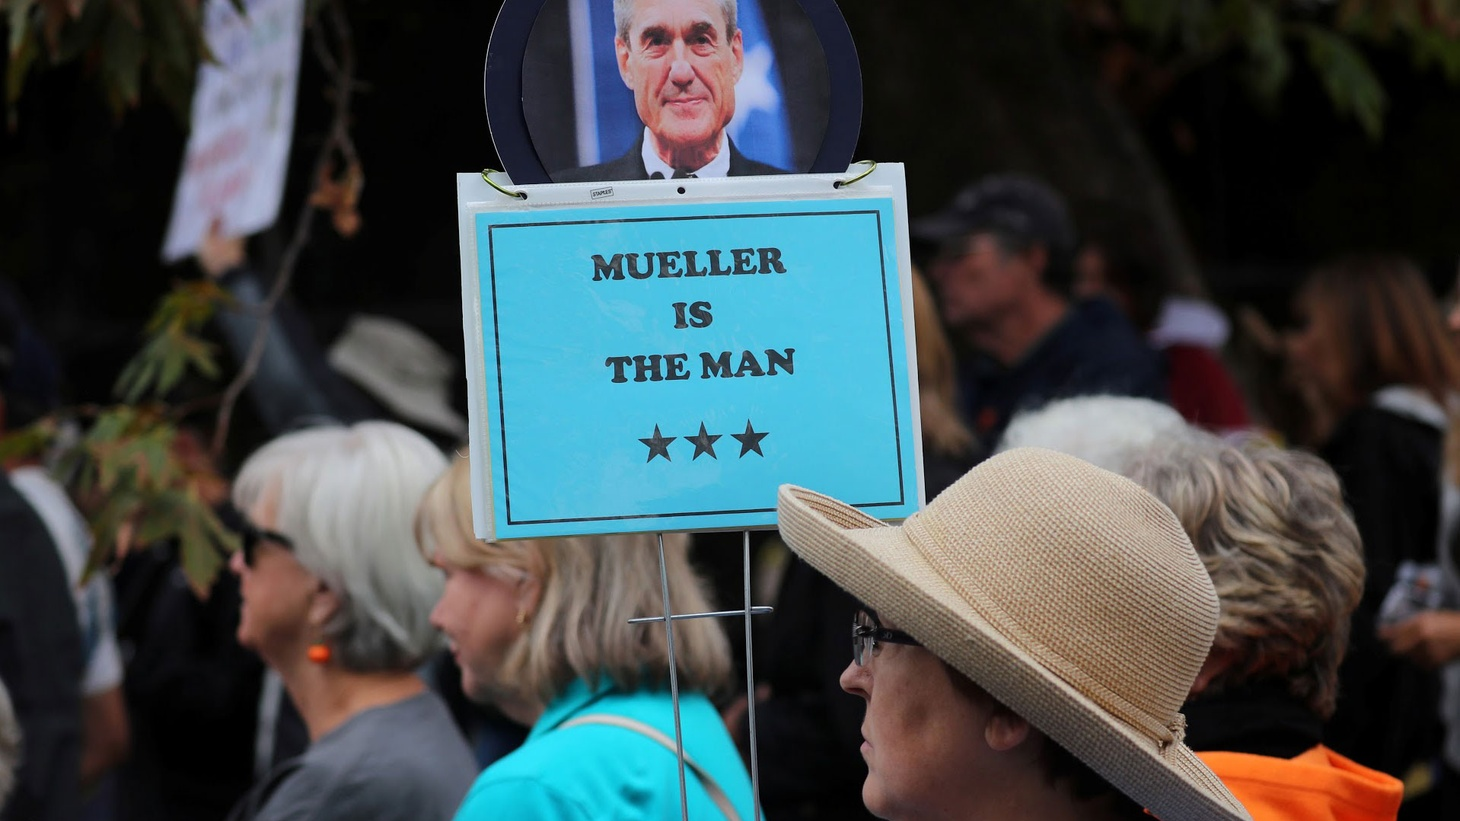 Former Trump campaign chairman Paul Manafort was indicted on 12 counts, including money laundering, and former advisor George Papadopoulos pleaded guilty to lying to the FBI. The stories have played out differently, depending on where you get your news.